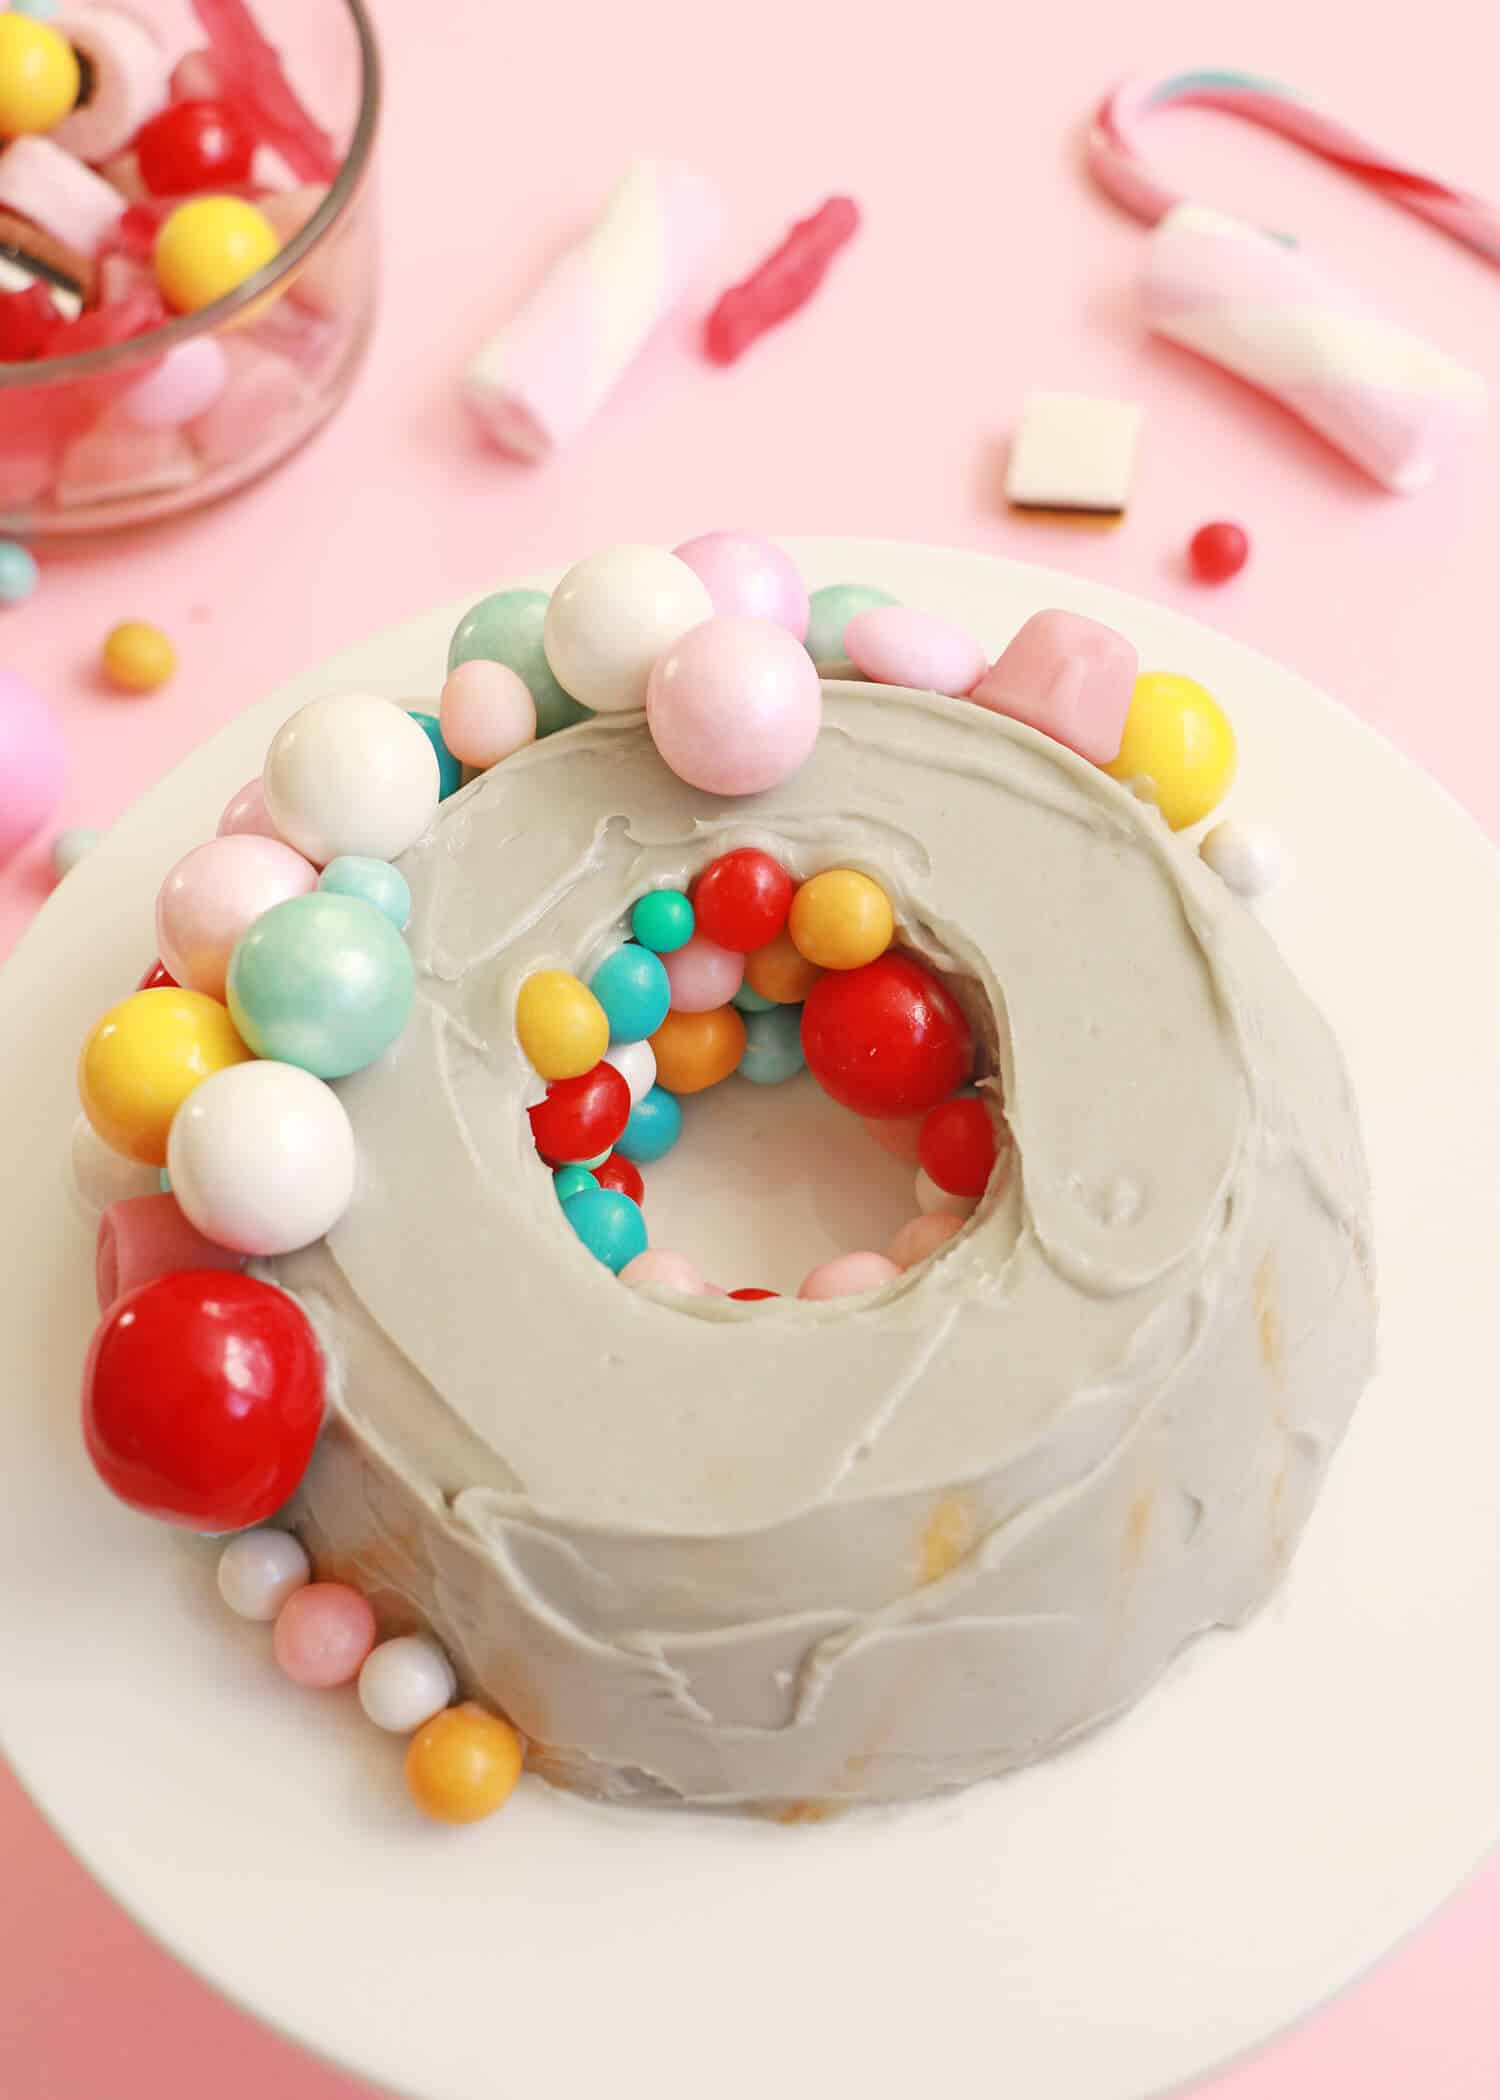 How To Decorate Uneven Cake